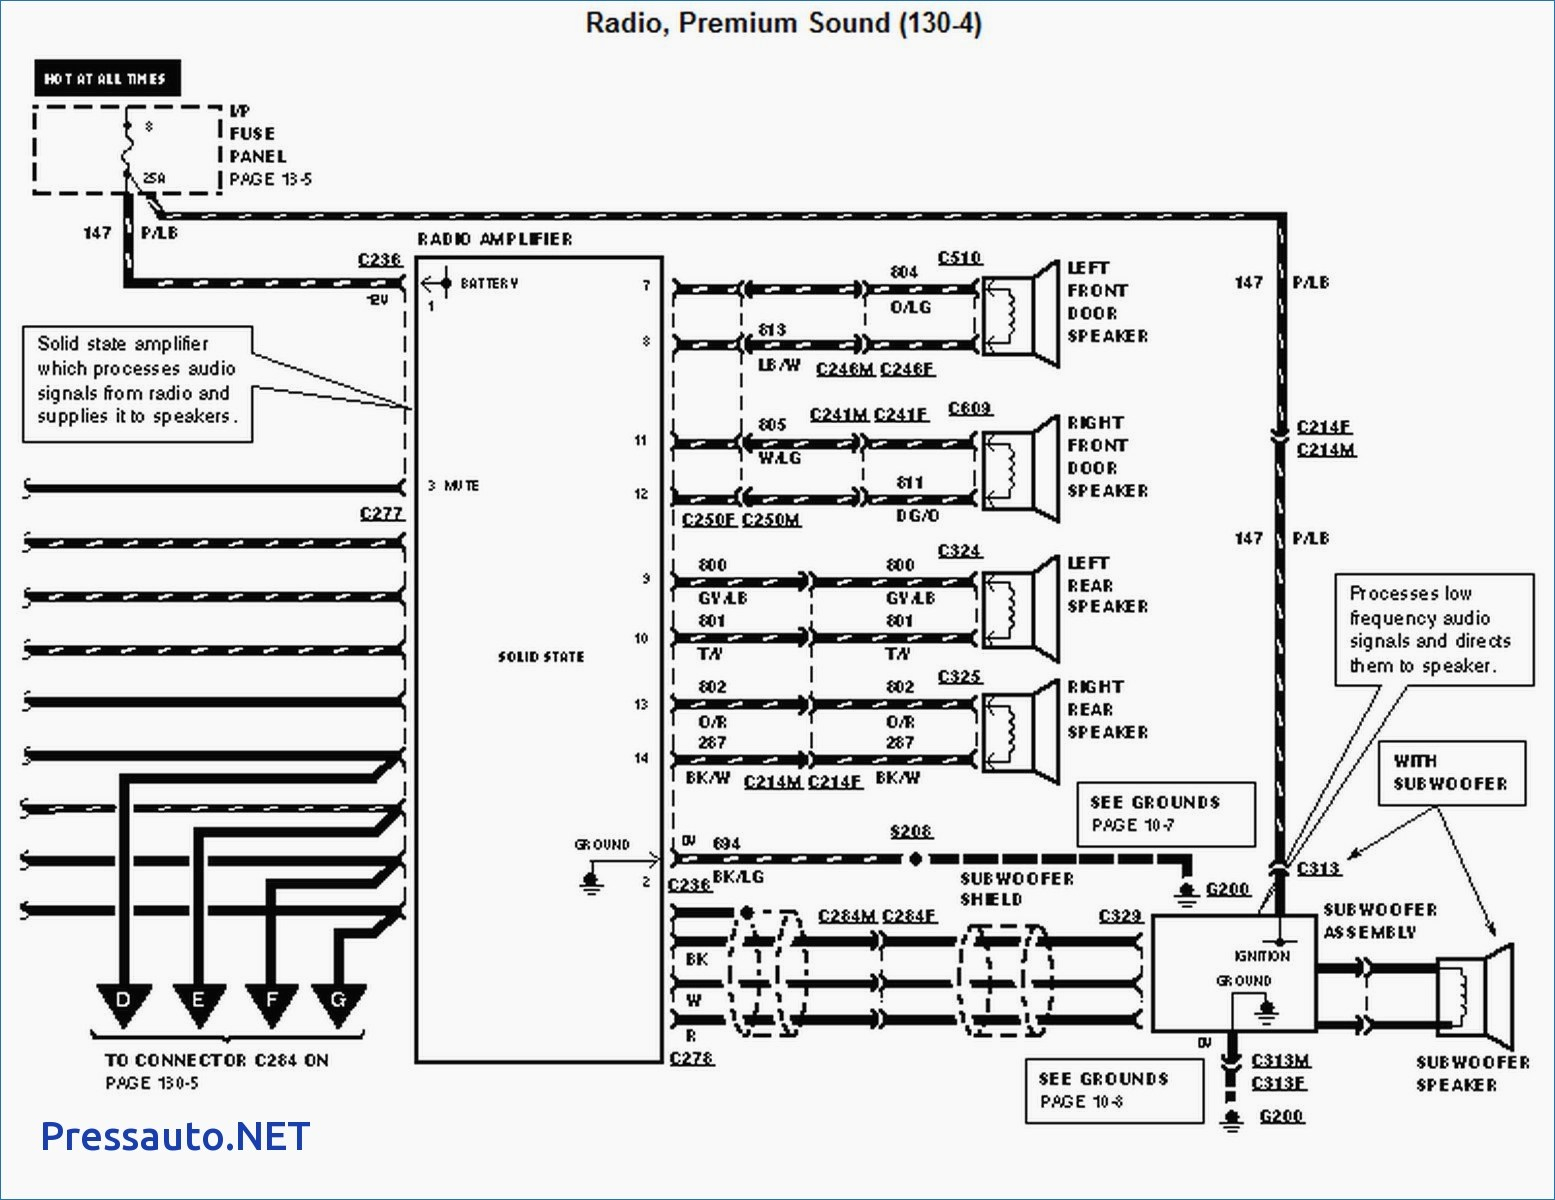 cellular phone tower signal diagram wiring for air compressor pressure switch patlite download